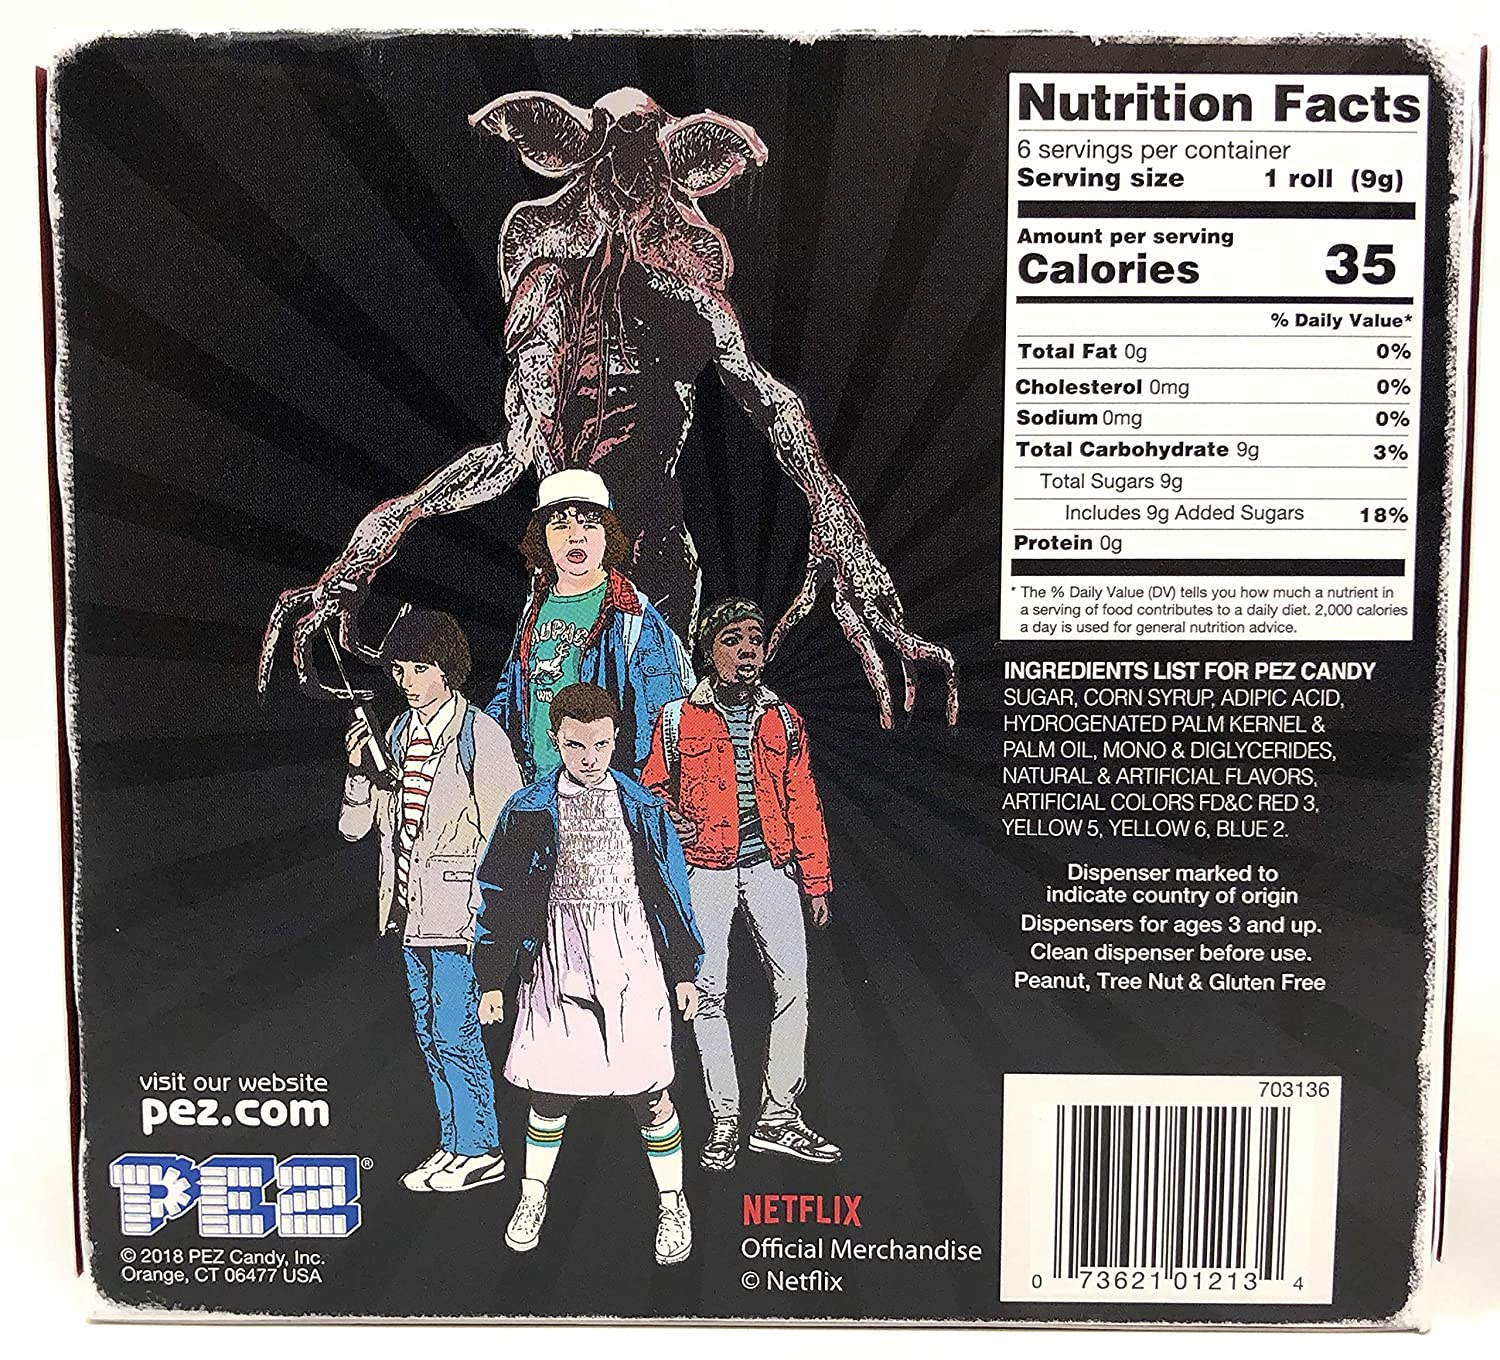 Amazon.com : PEZ Stranger Things Gift Set Dispensers Plus 6 Candy Refills - Eleven and Mike Pez Dispensers : Grocery & Gourmet Food